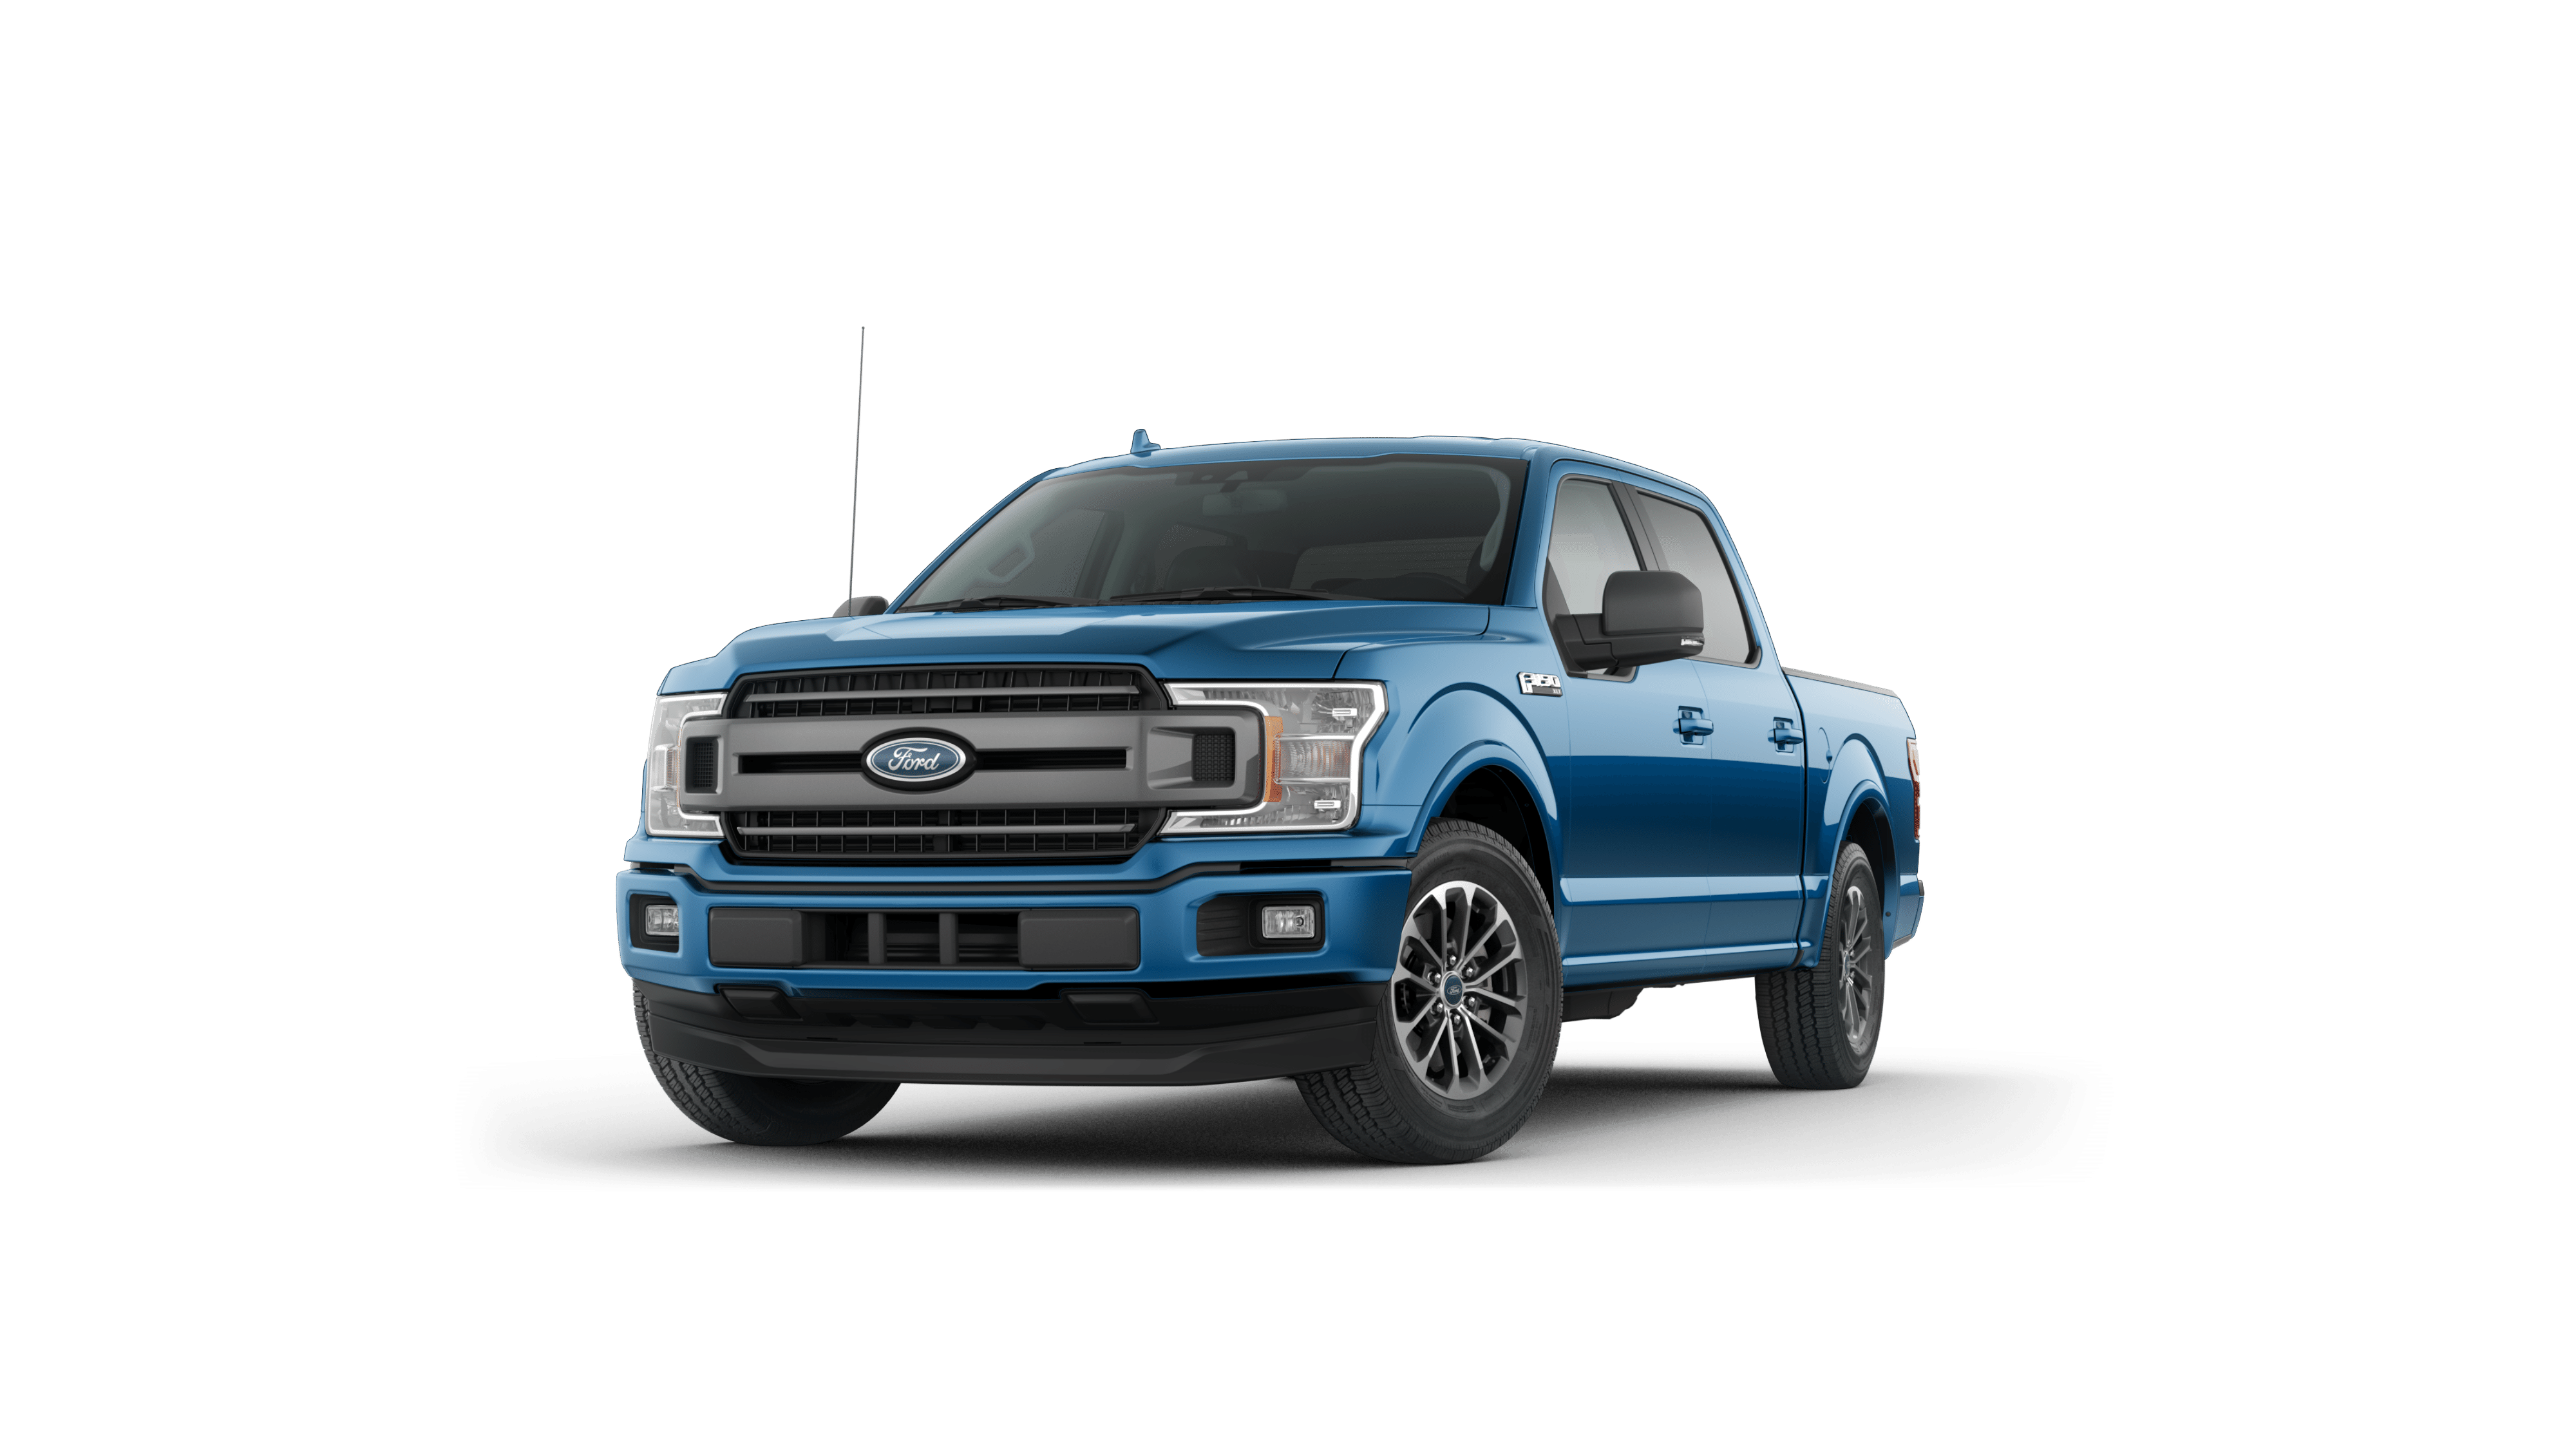 2018 Ford F 150 For Sale In South Gate 1ftew1c59jkf93395